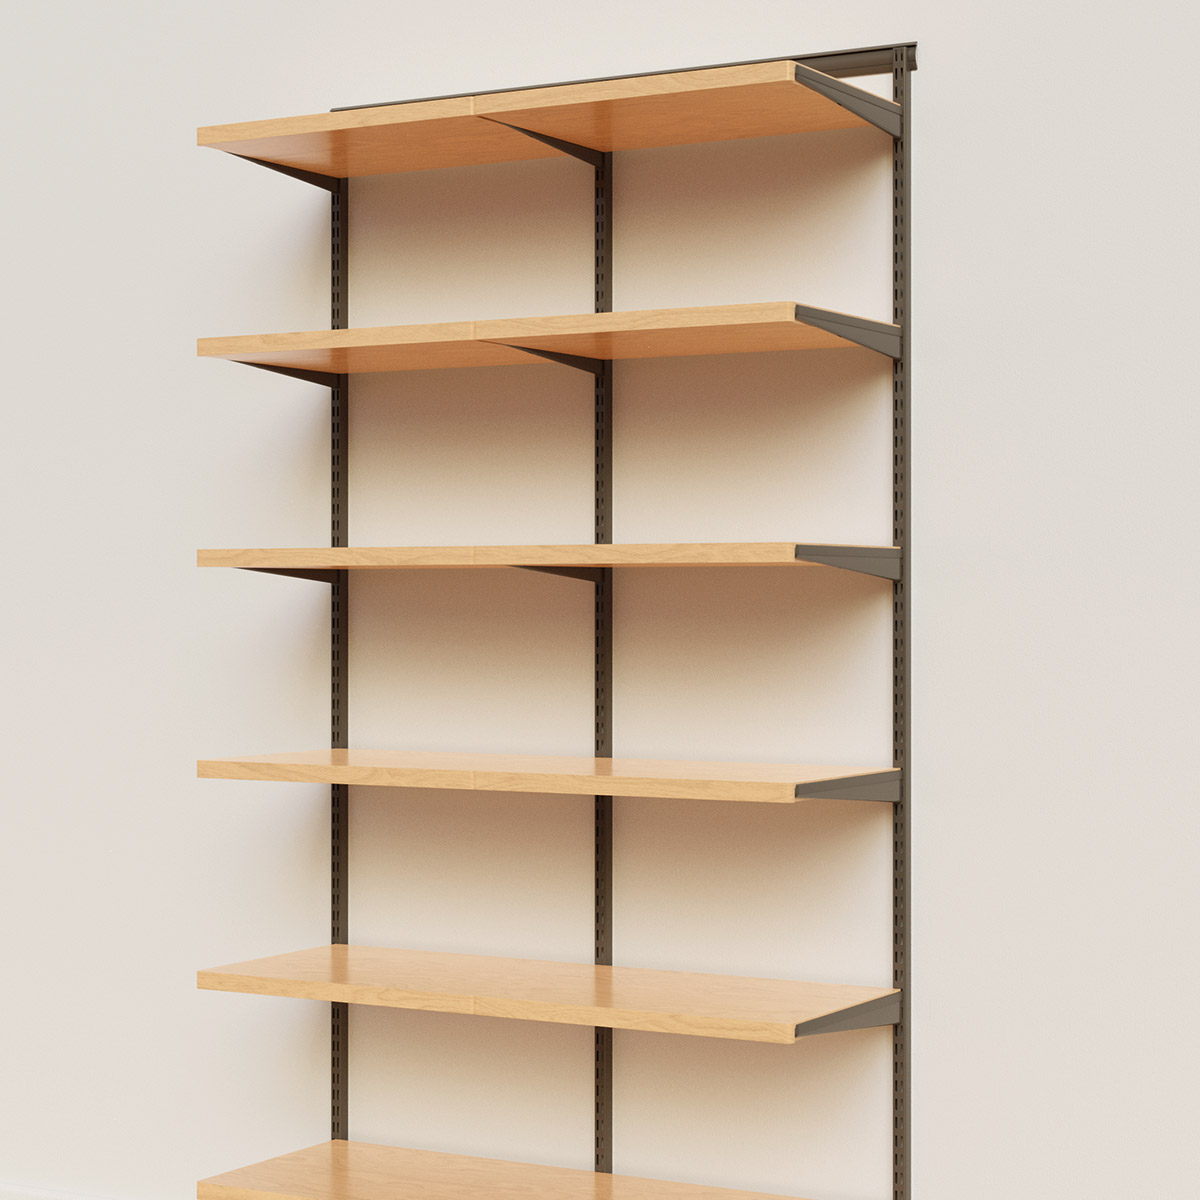 Elfa Décor 4' Graphite & Birch Basic Shelving Units for Anywhere